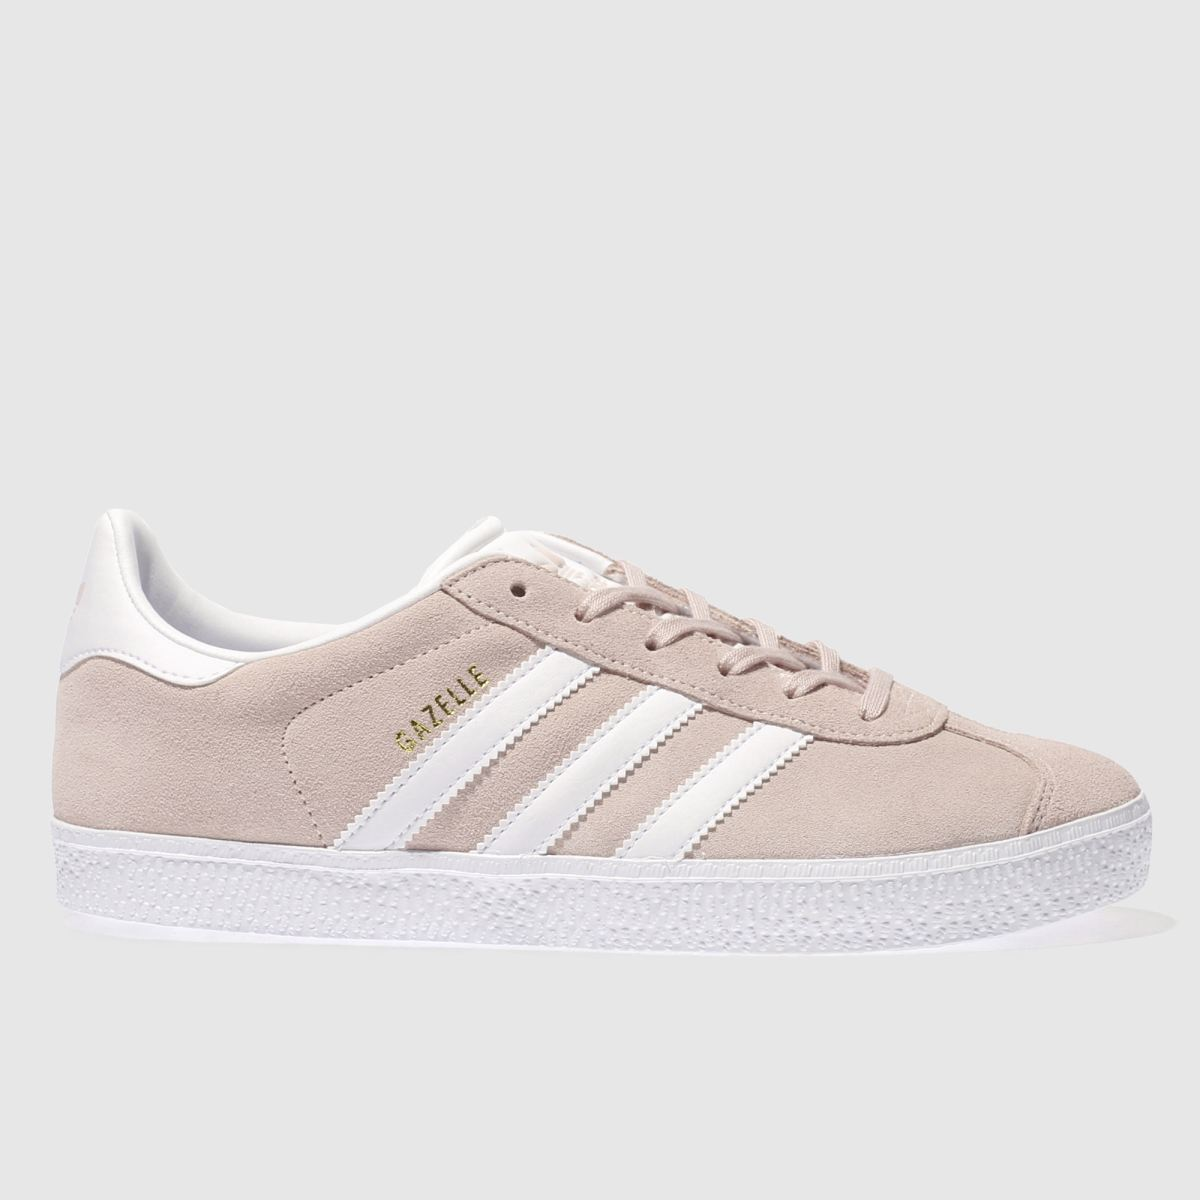 adidas pale pink gazelle Girls Youth Trainers